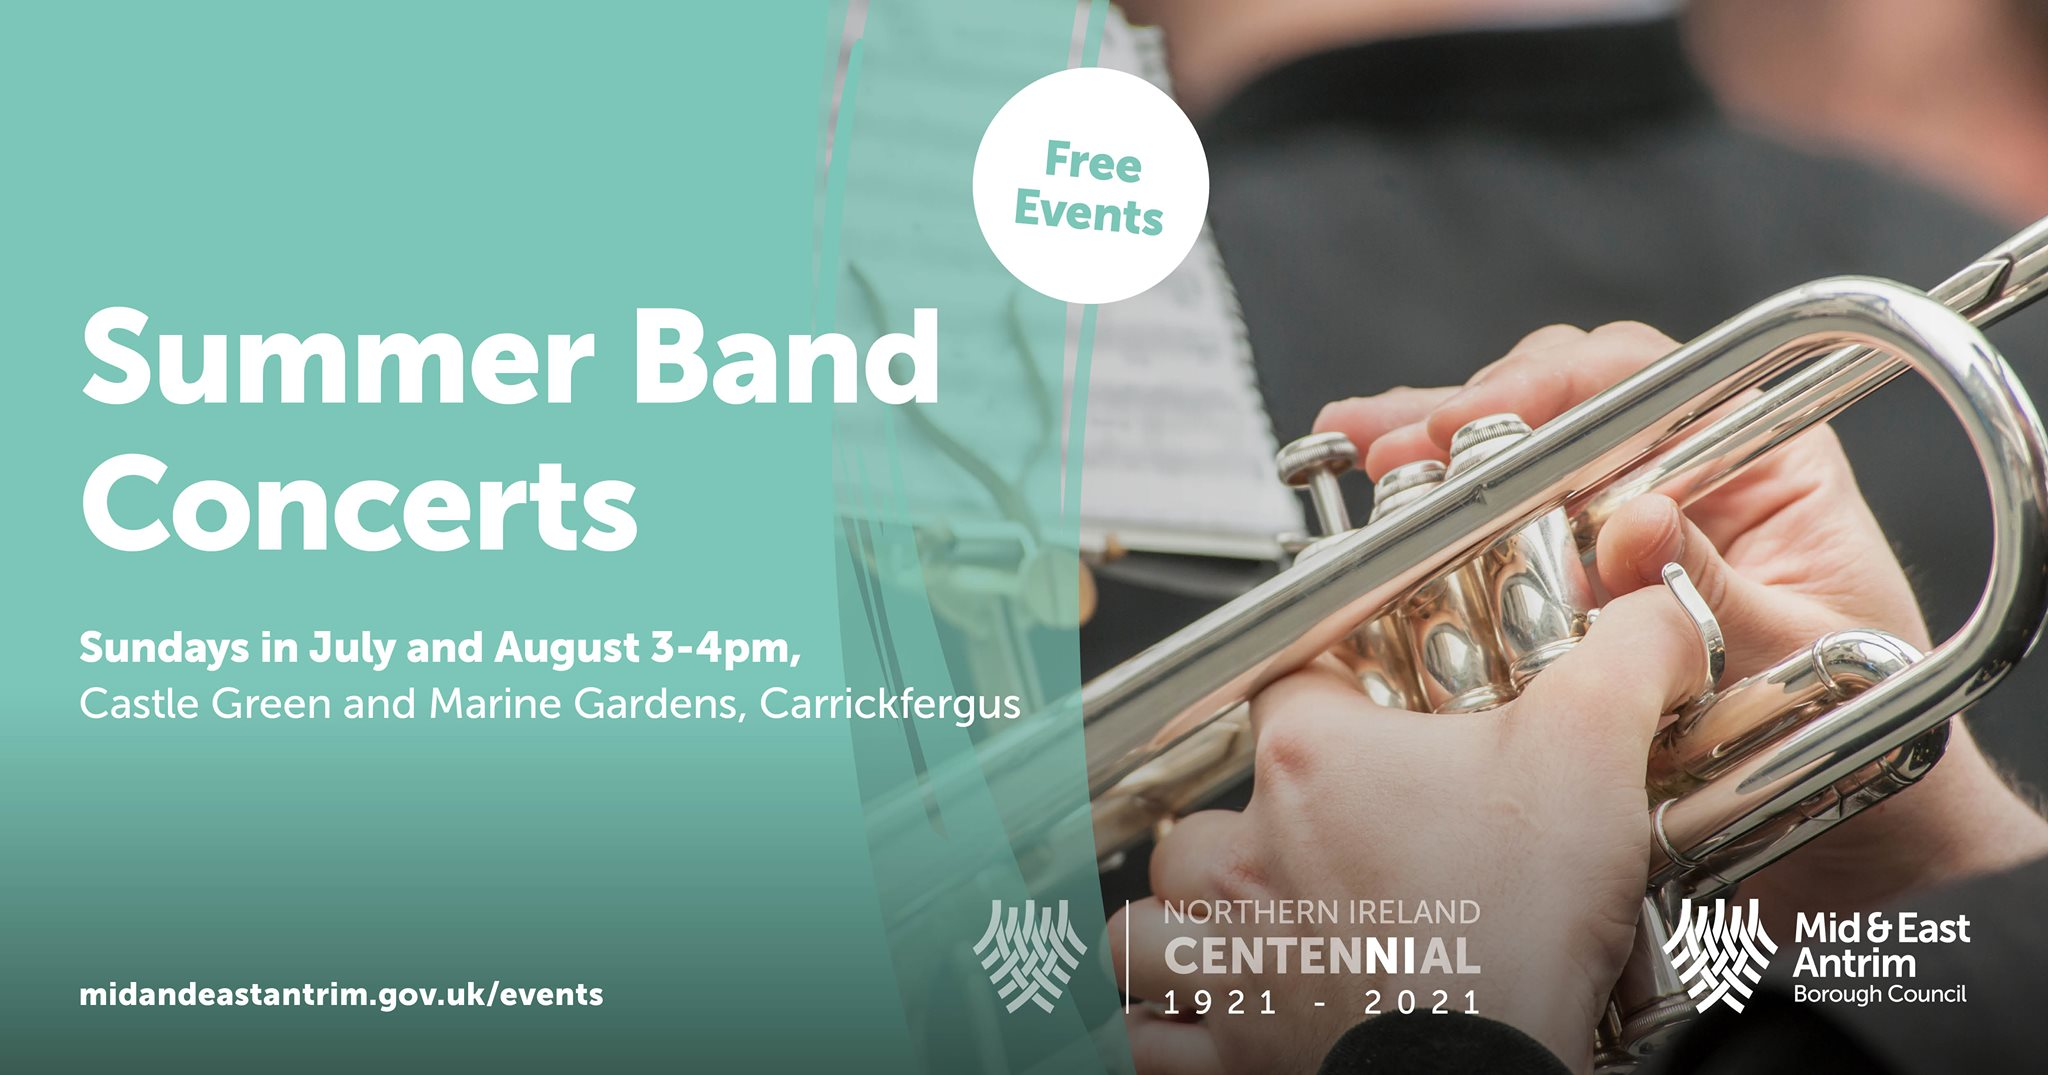 A close up of hands playing a trumpet and information about summer band concerts